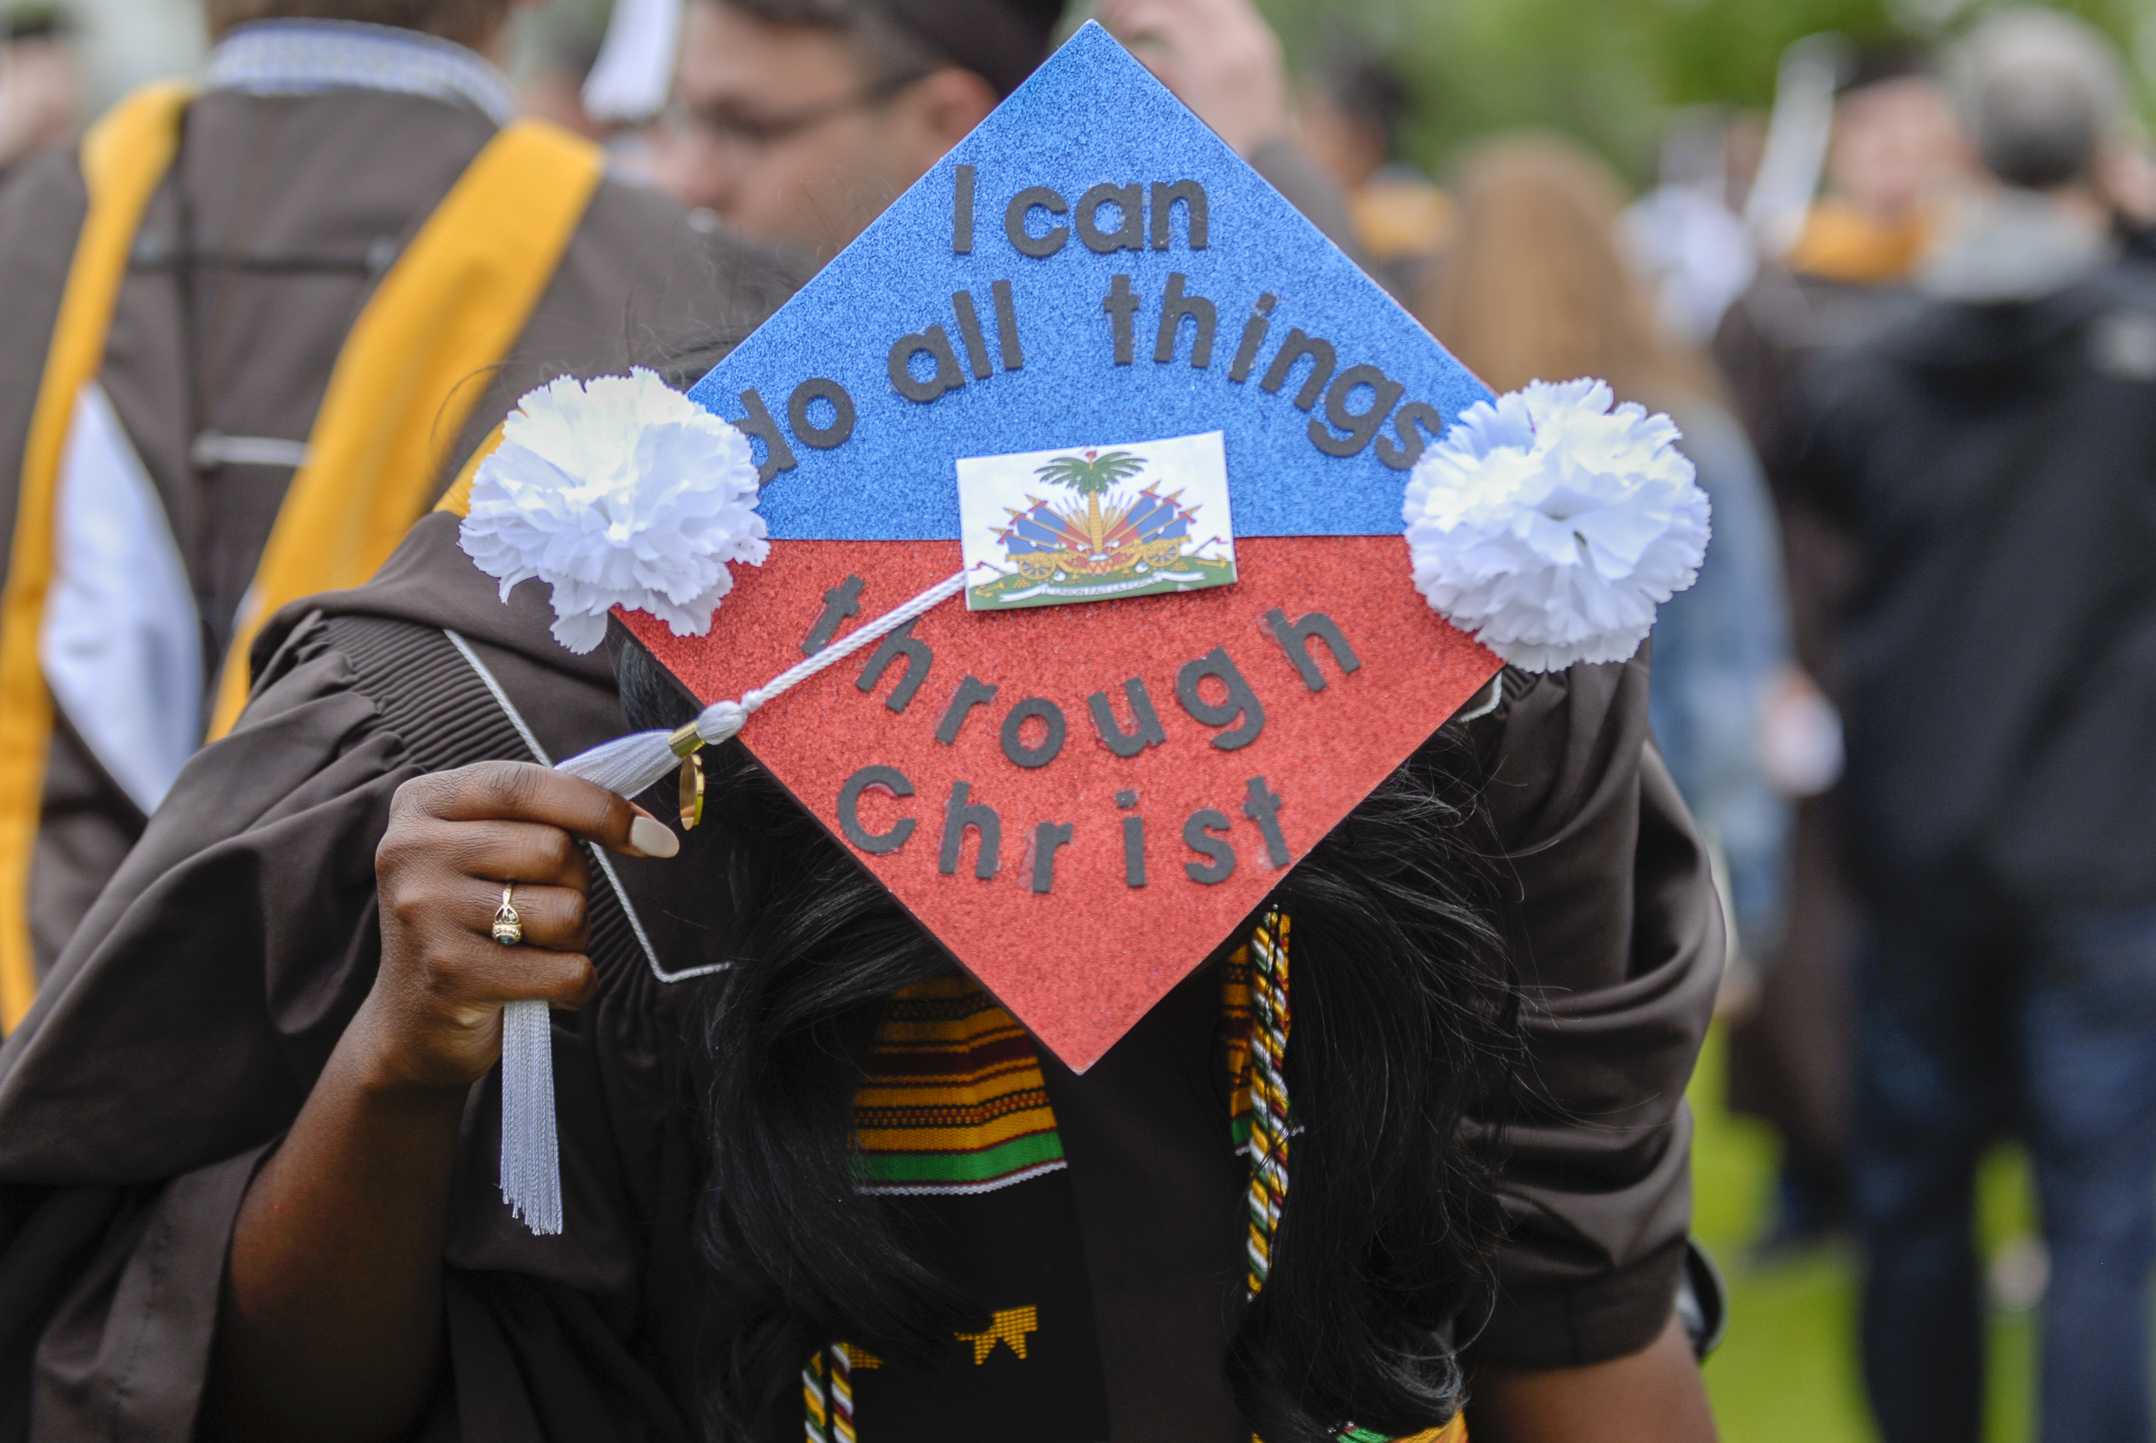 Esther Petit-Frere, '17, a finance graduate, shows her decorated graduation cap Monday, May 23, 2017, outside Goodman Stadium. Petit-Frere decorated her hat to signify her home country, Haiti, and included a Bible verse that she said got her through college. (Roshan Giyanani/B&W Staff)